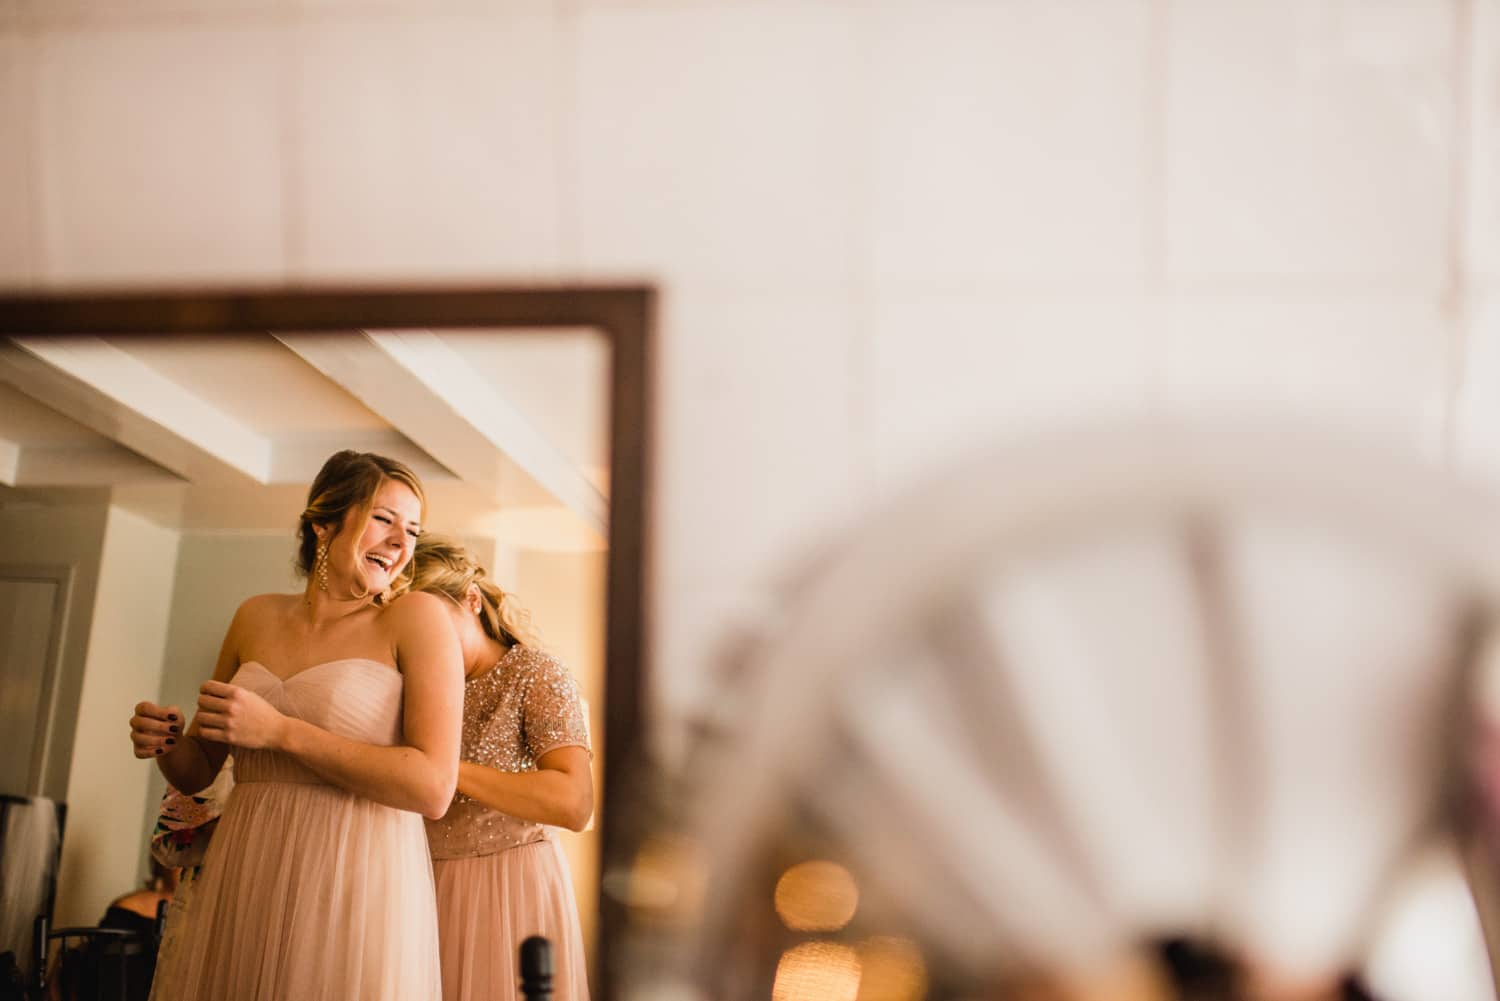 reflection of bridesmaid in mirror